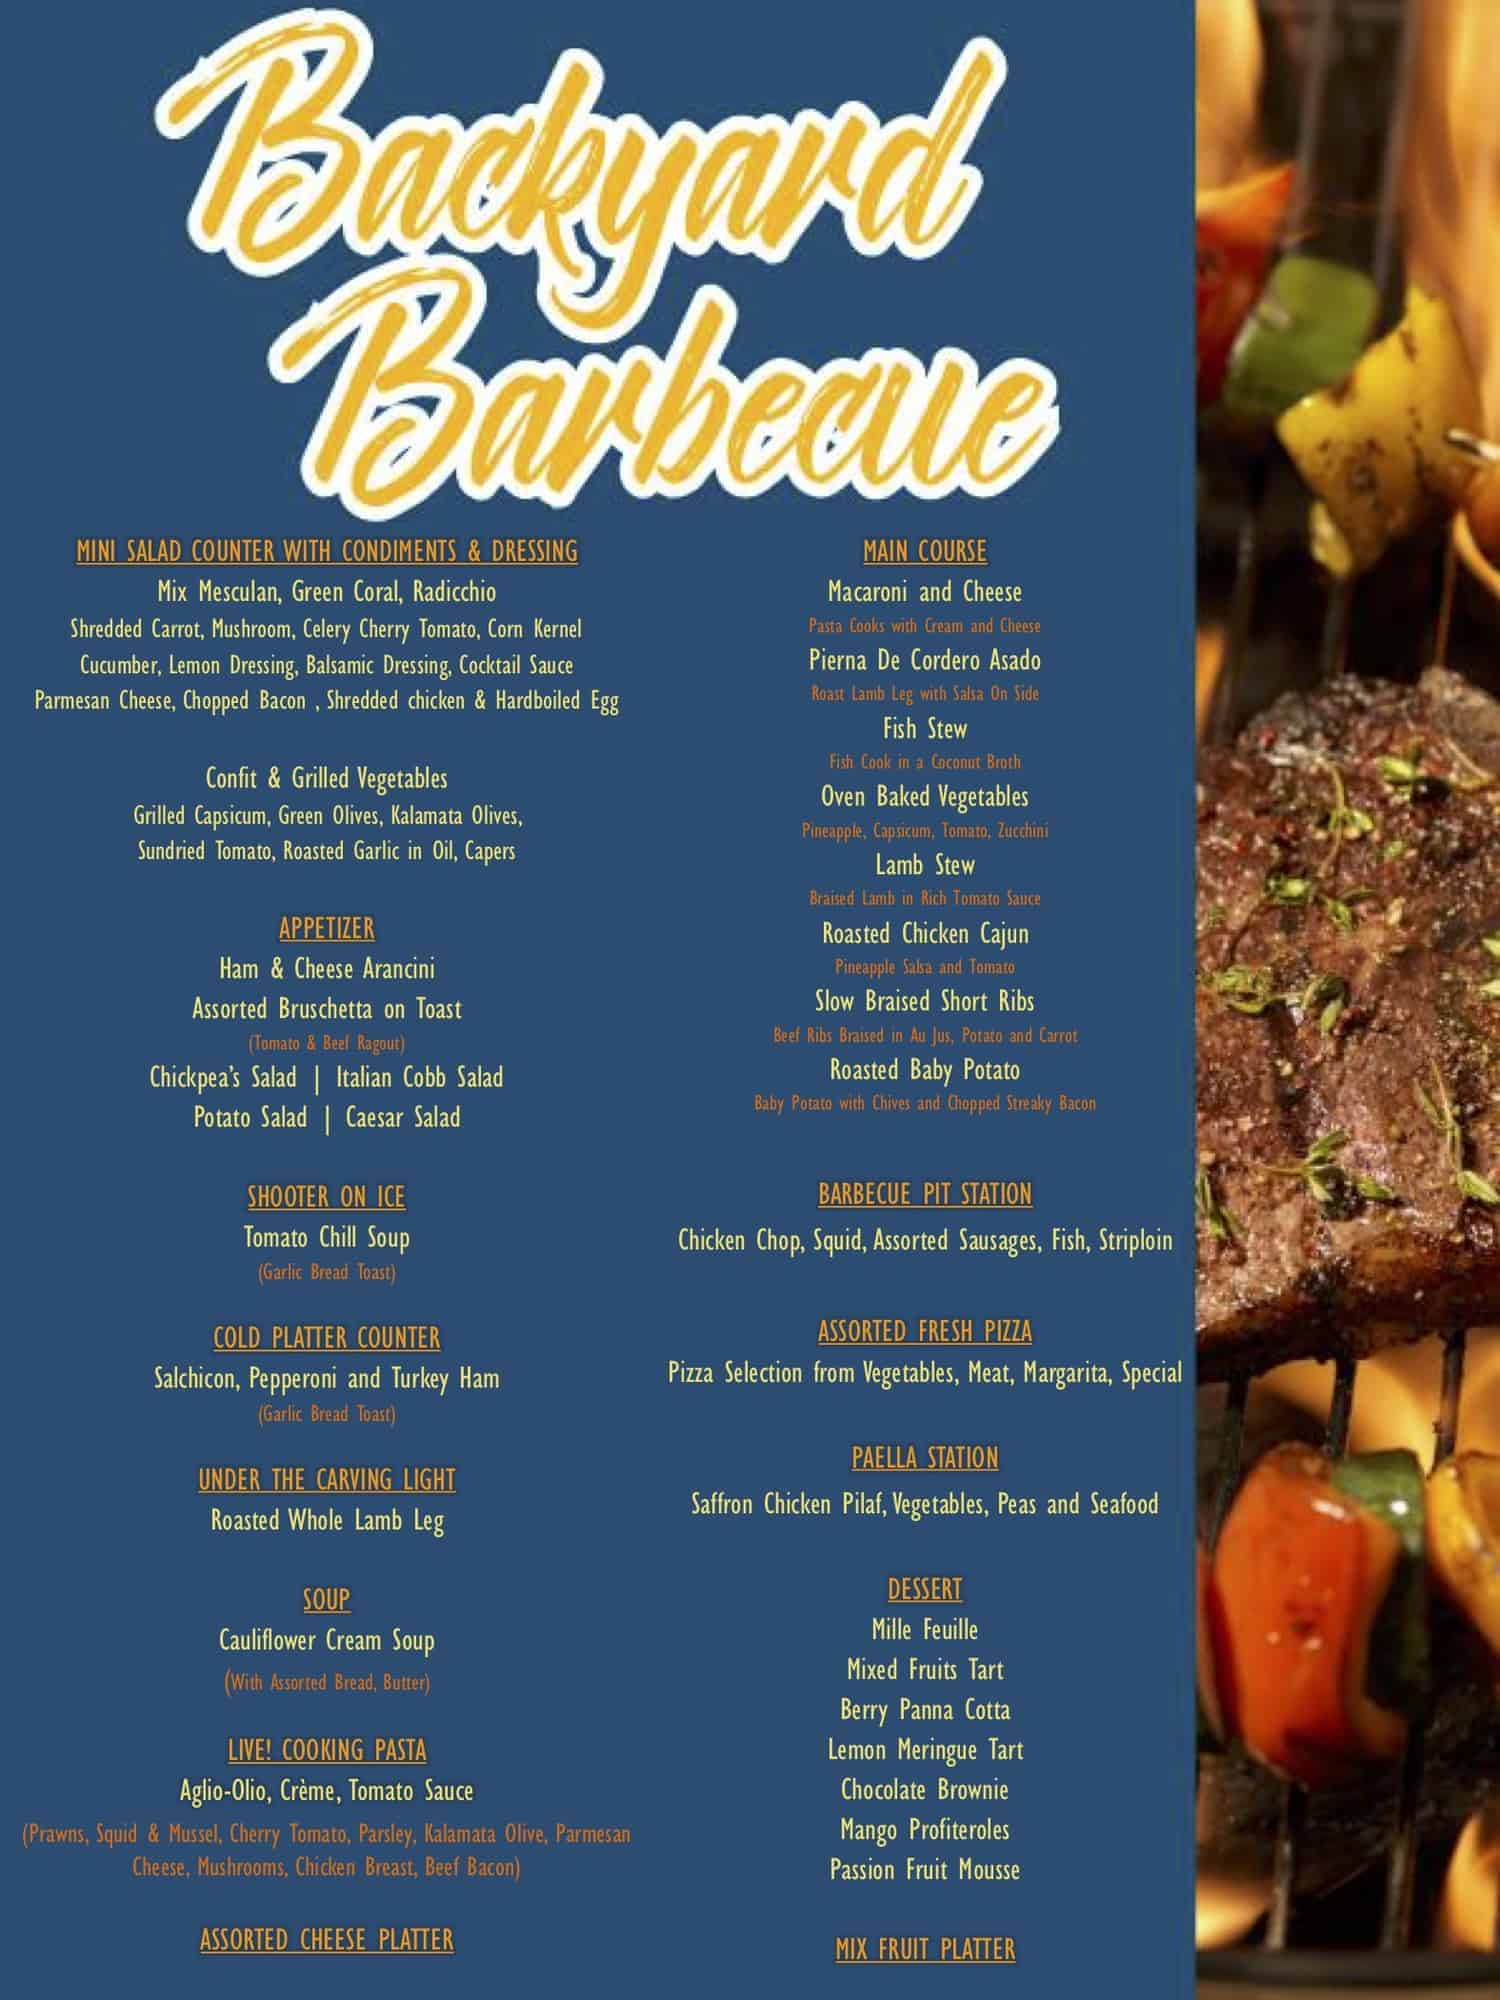 backyard-barbecue-menu